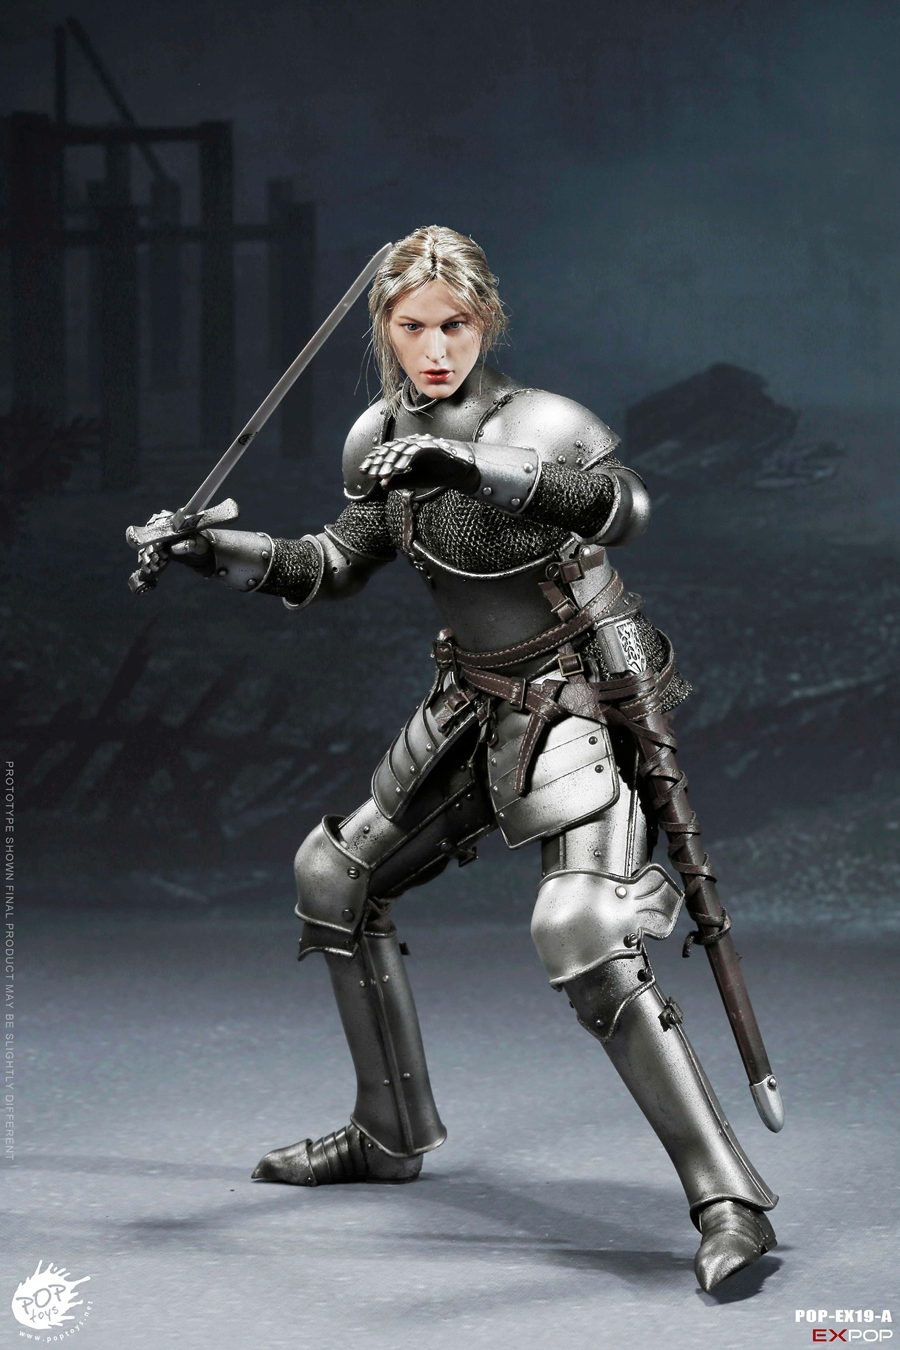 NEW PRODUCT: POPTOYS New Products: 1/6 St. Knights - Assault Edition & Triumph Edition & Iron Armor (POP-EX19 ABC) 541